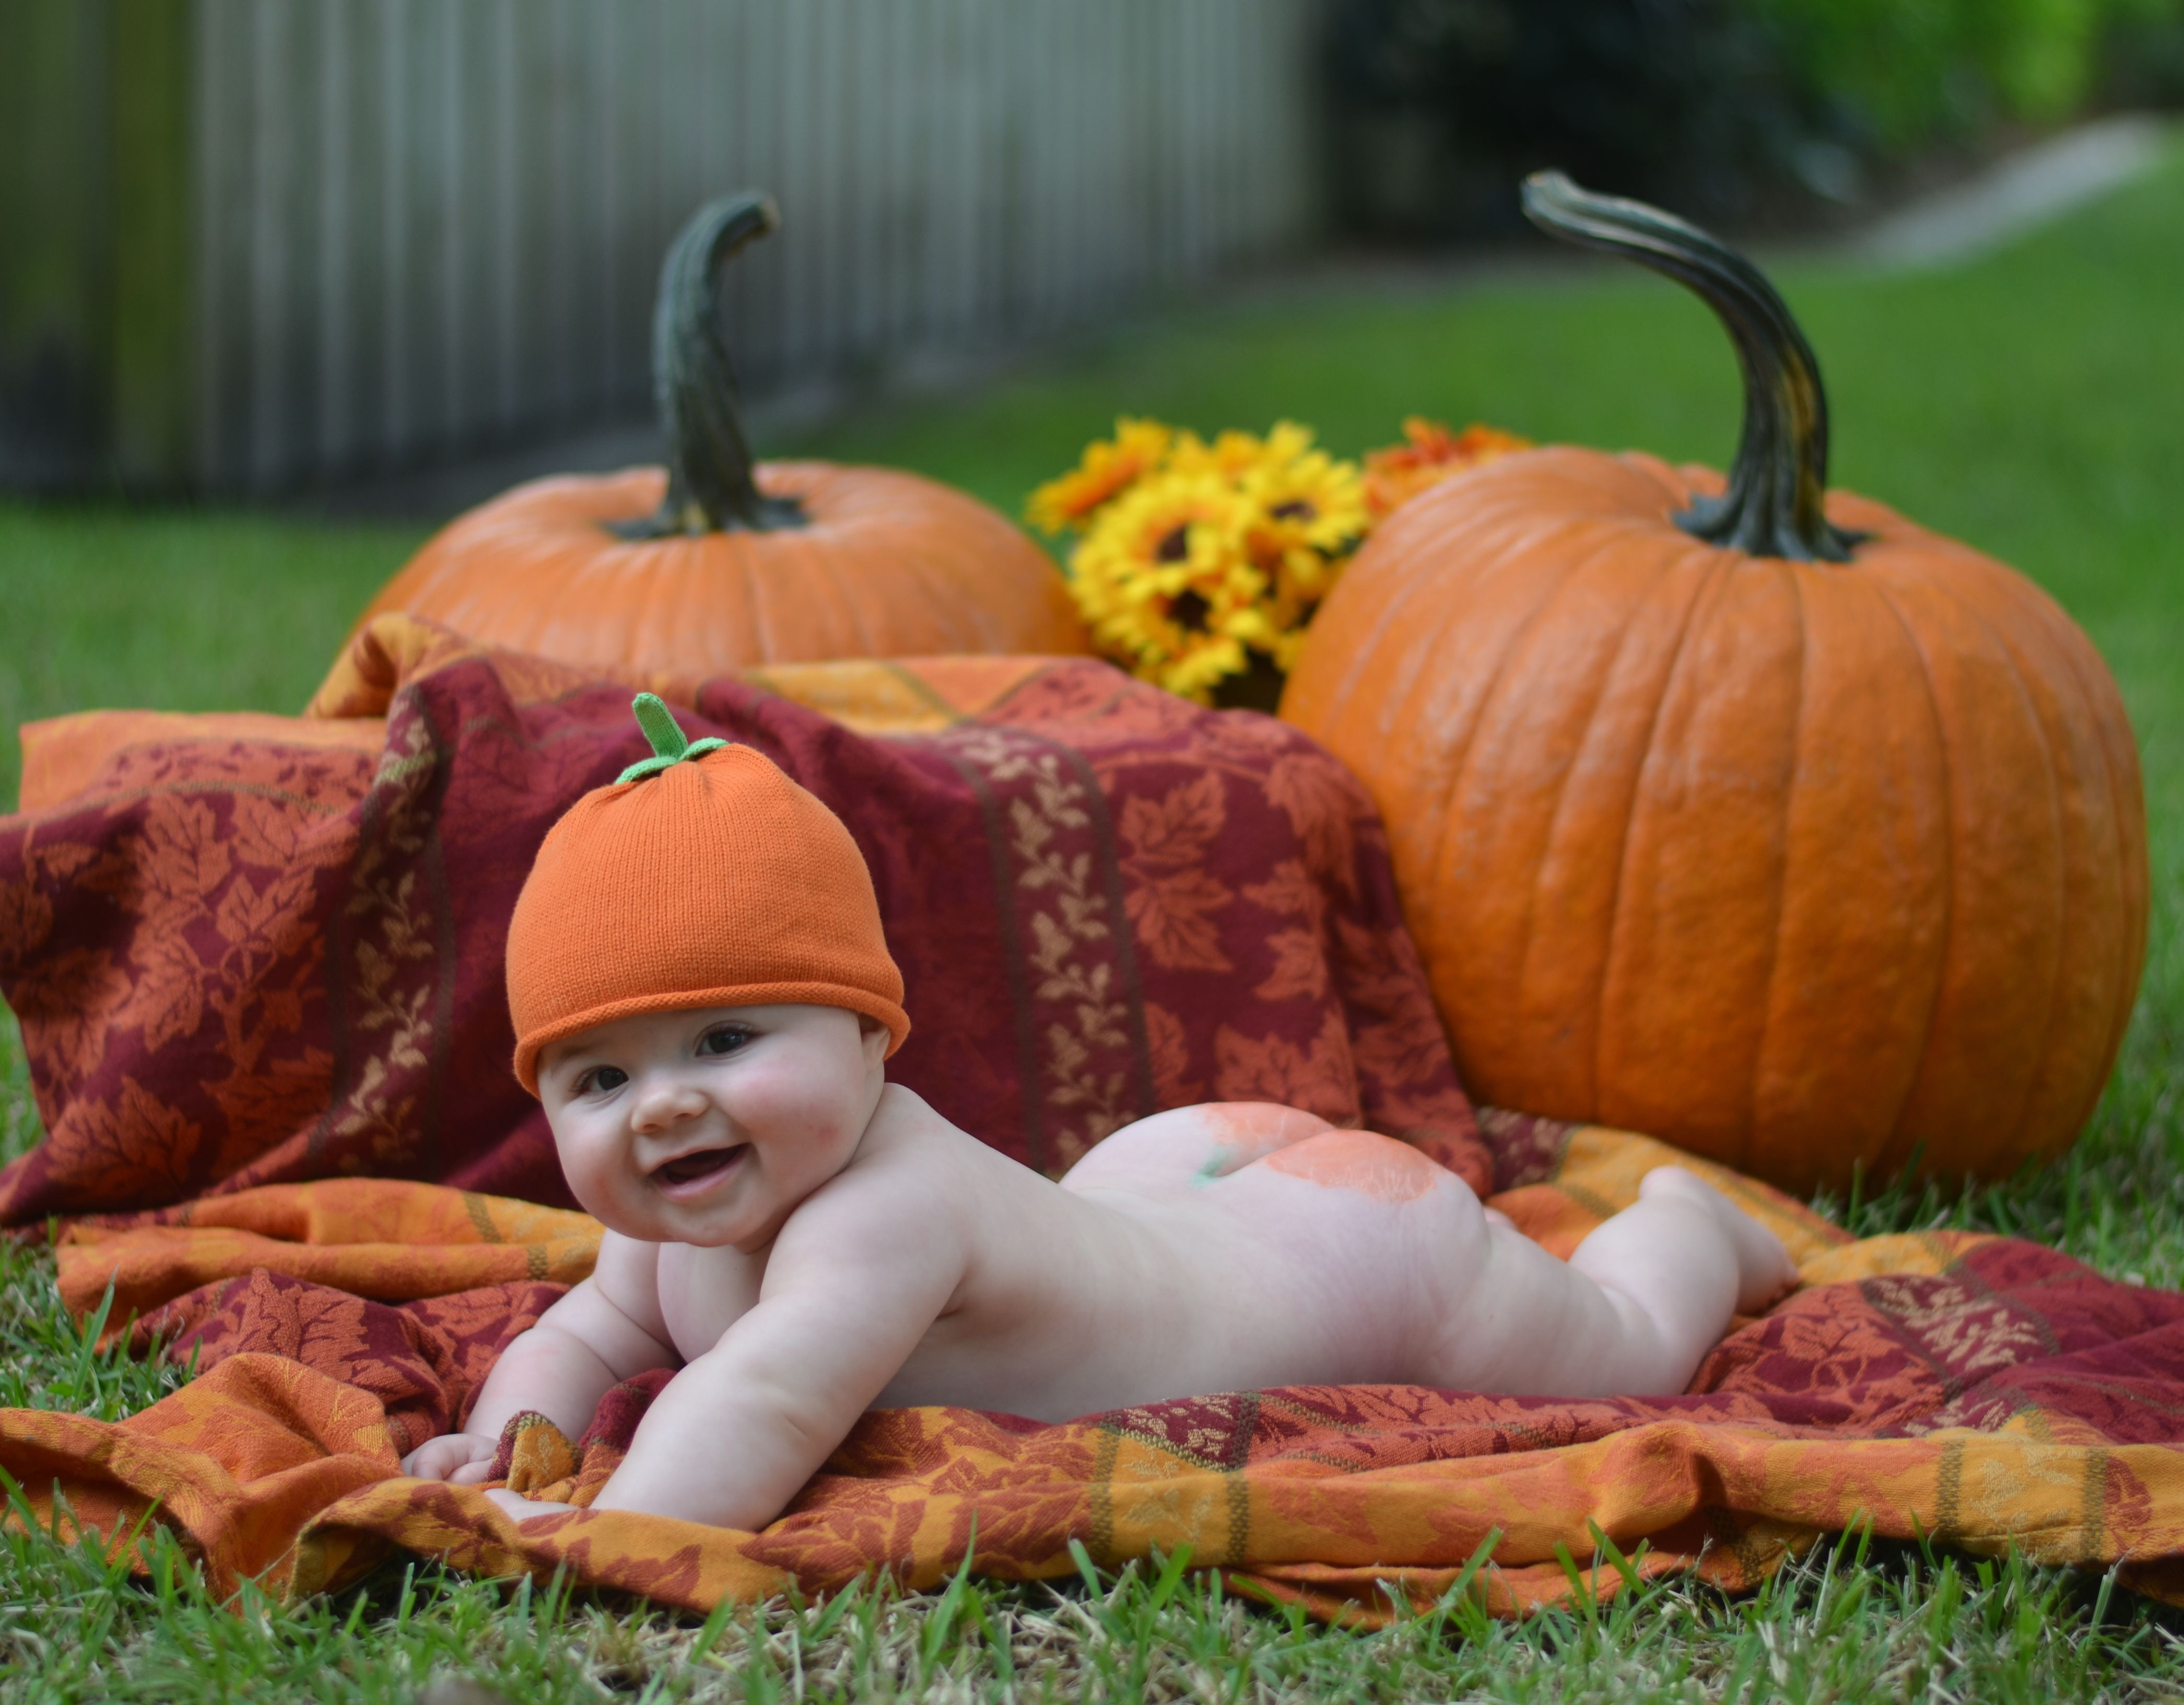 10 Photos of Babies in Pumpkins That Are Too Pure for Words pictures